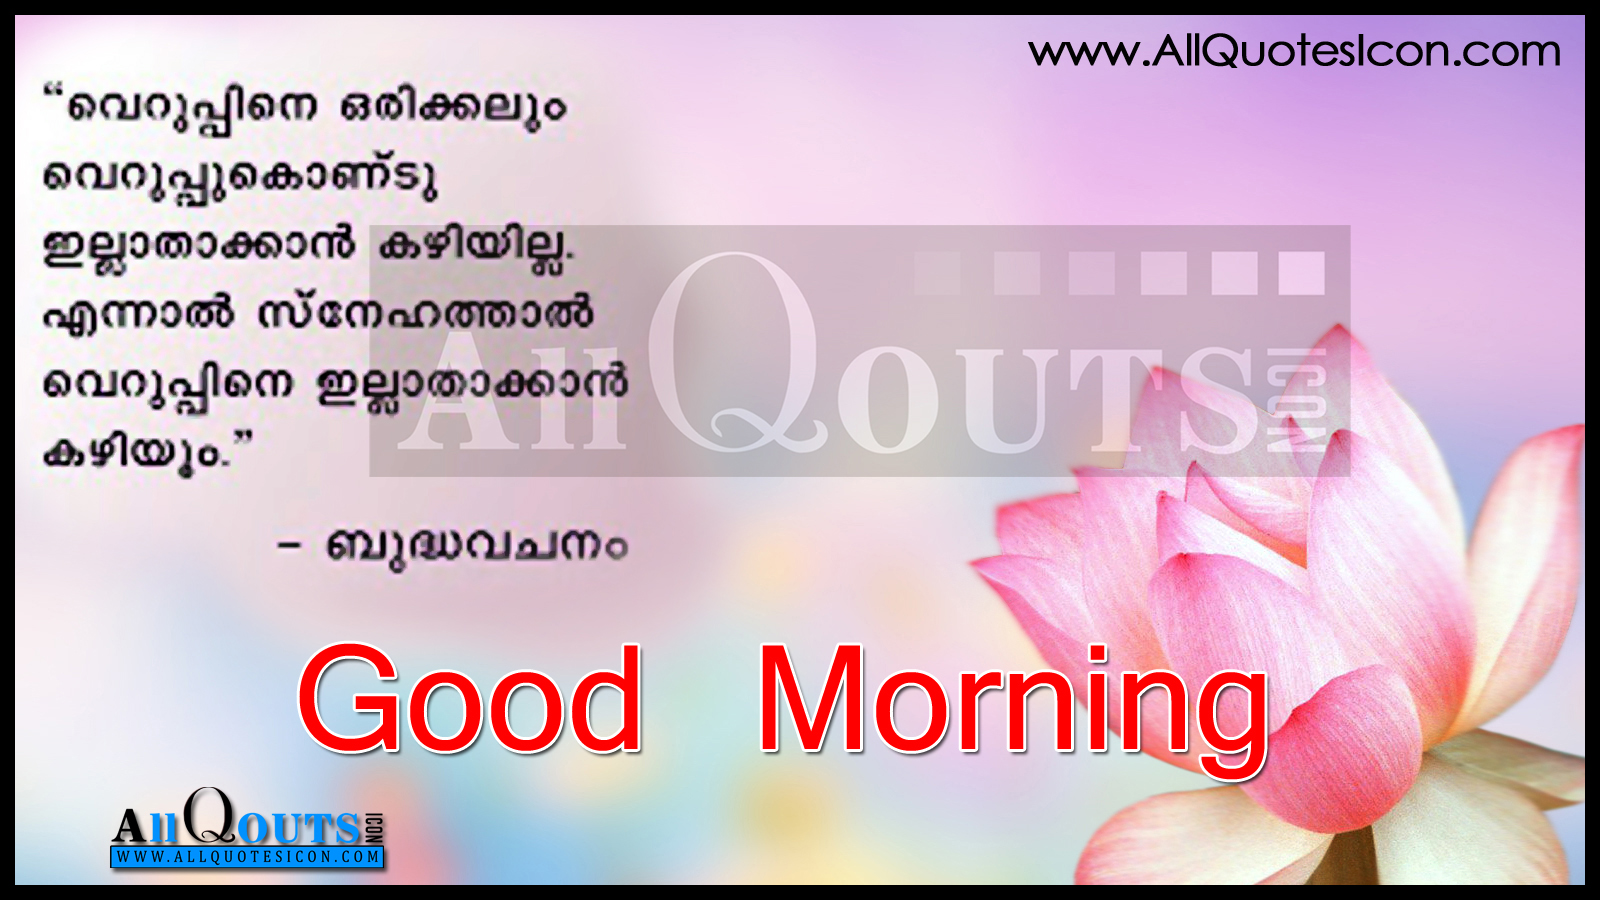 10 Malayalam Good Morning Wishes Images Top Colection For Greeting